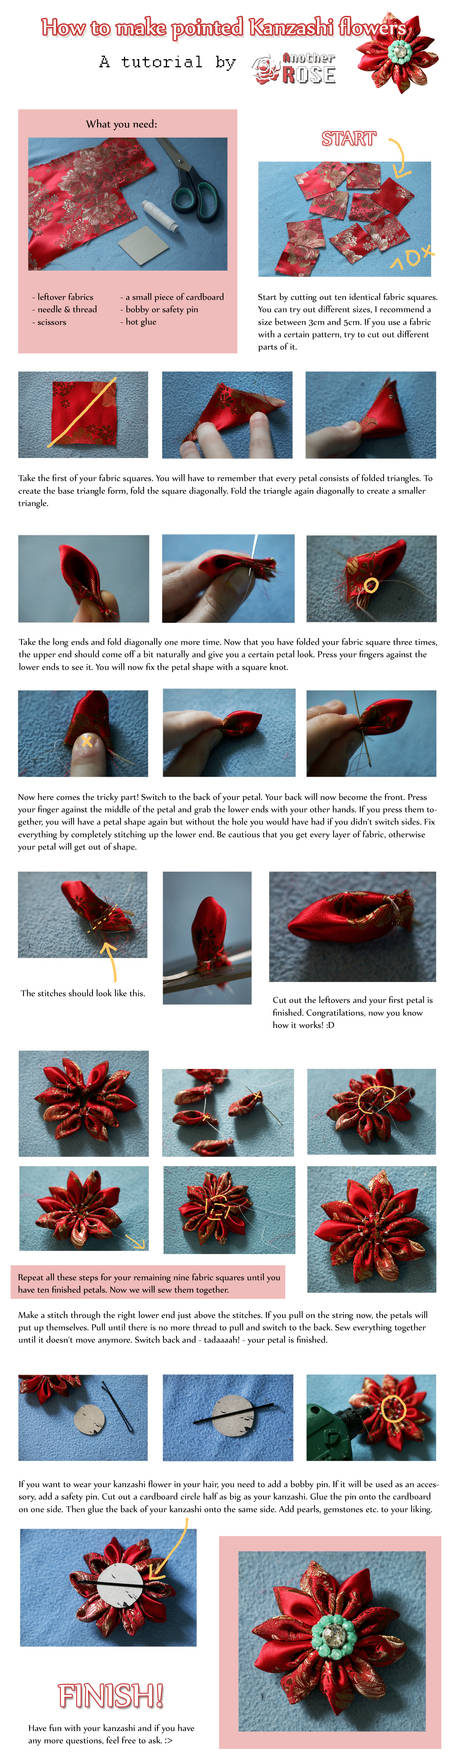 Tutorial - How to make pointed kanzashi flowers